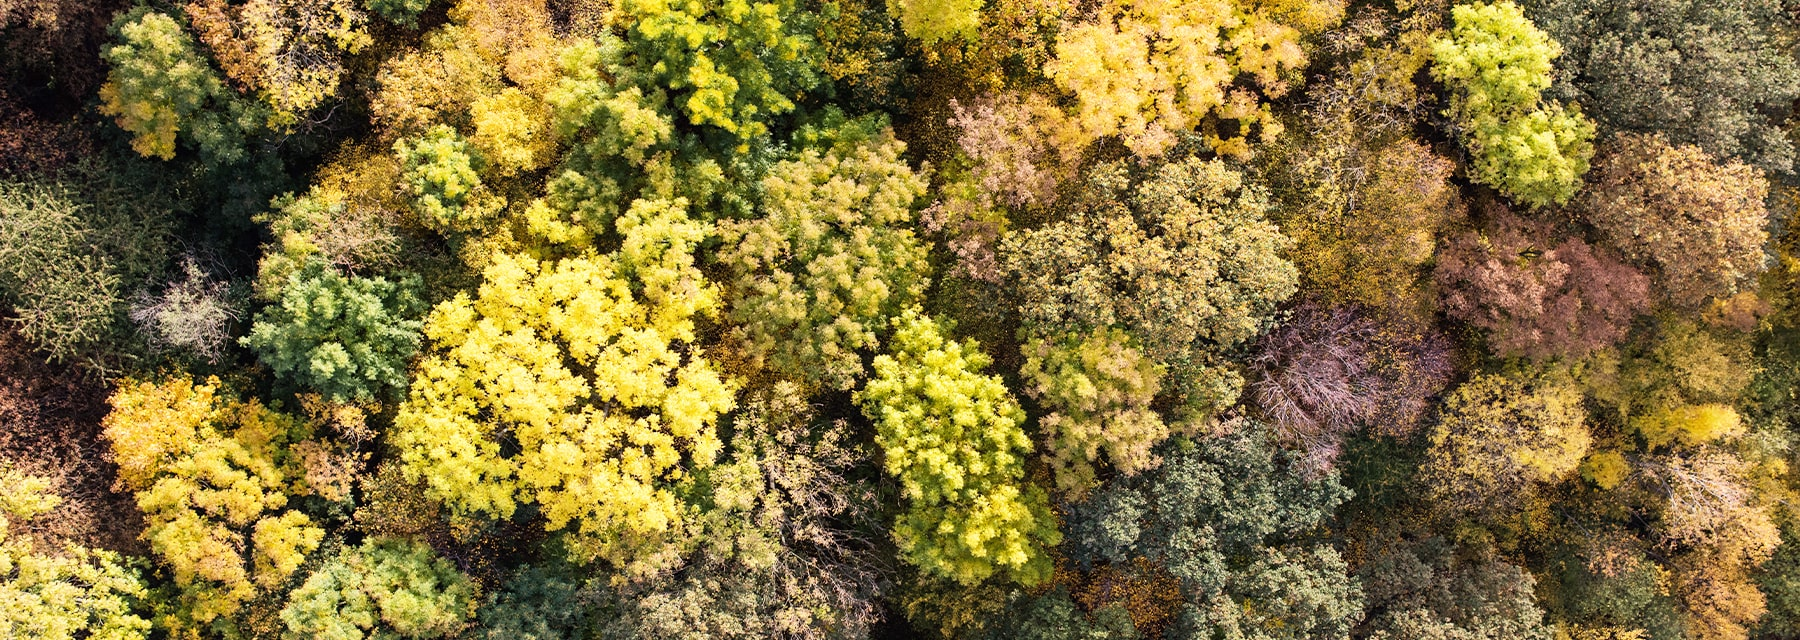 overhead view of dense forest